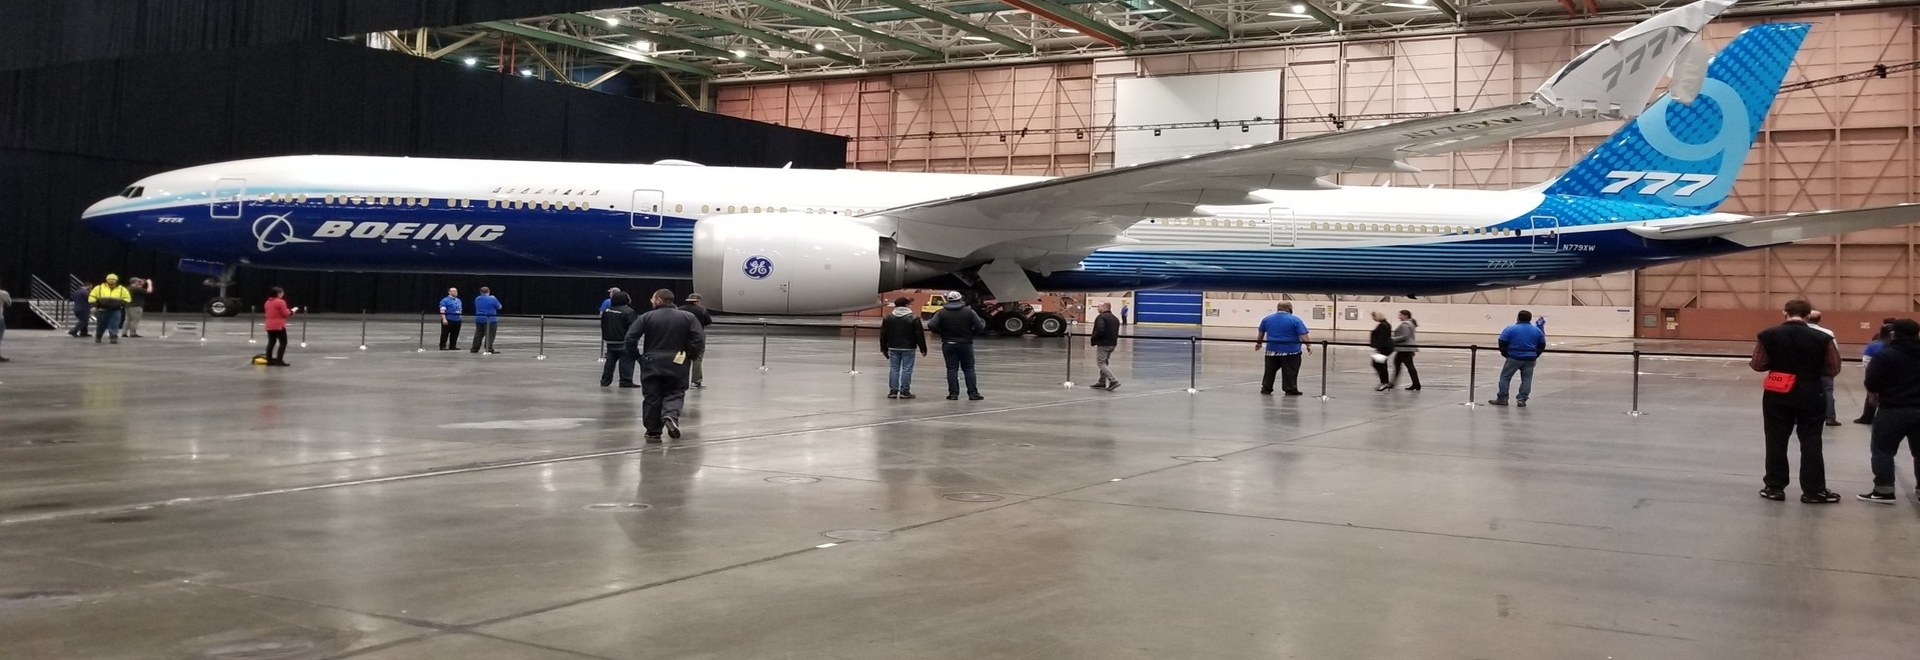 Magellan will supply landing gear kits and components for Boeing 737, 767, and 777 aircraft.